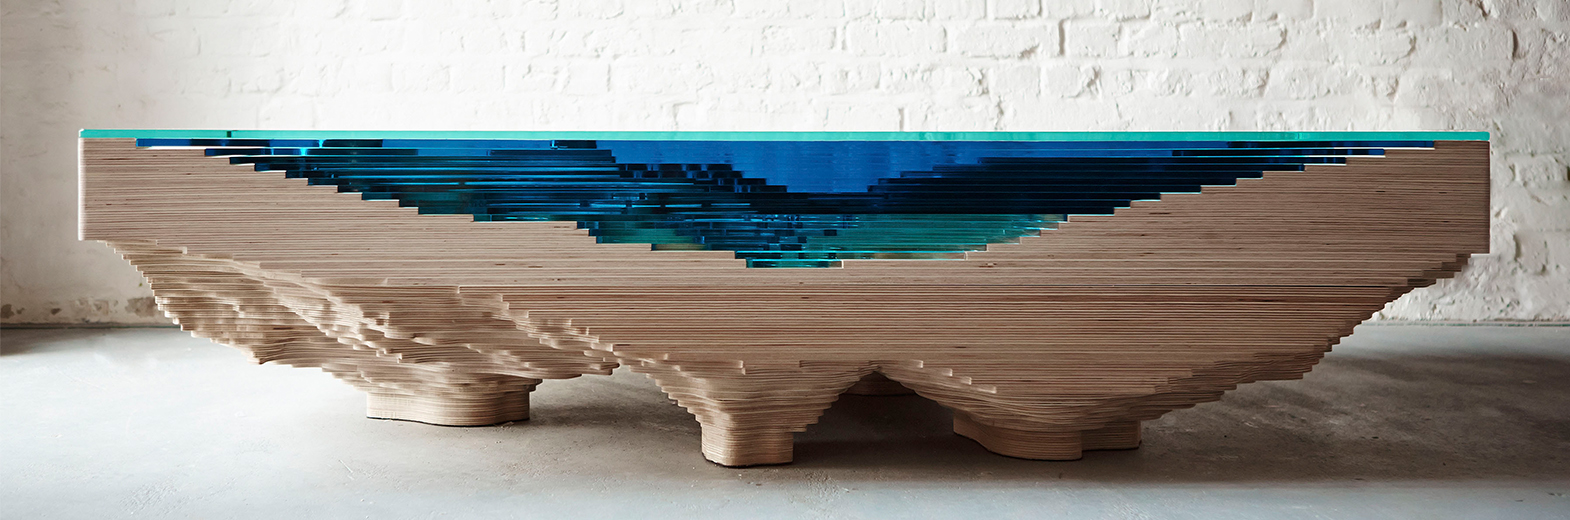 abyss table duffy london